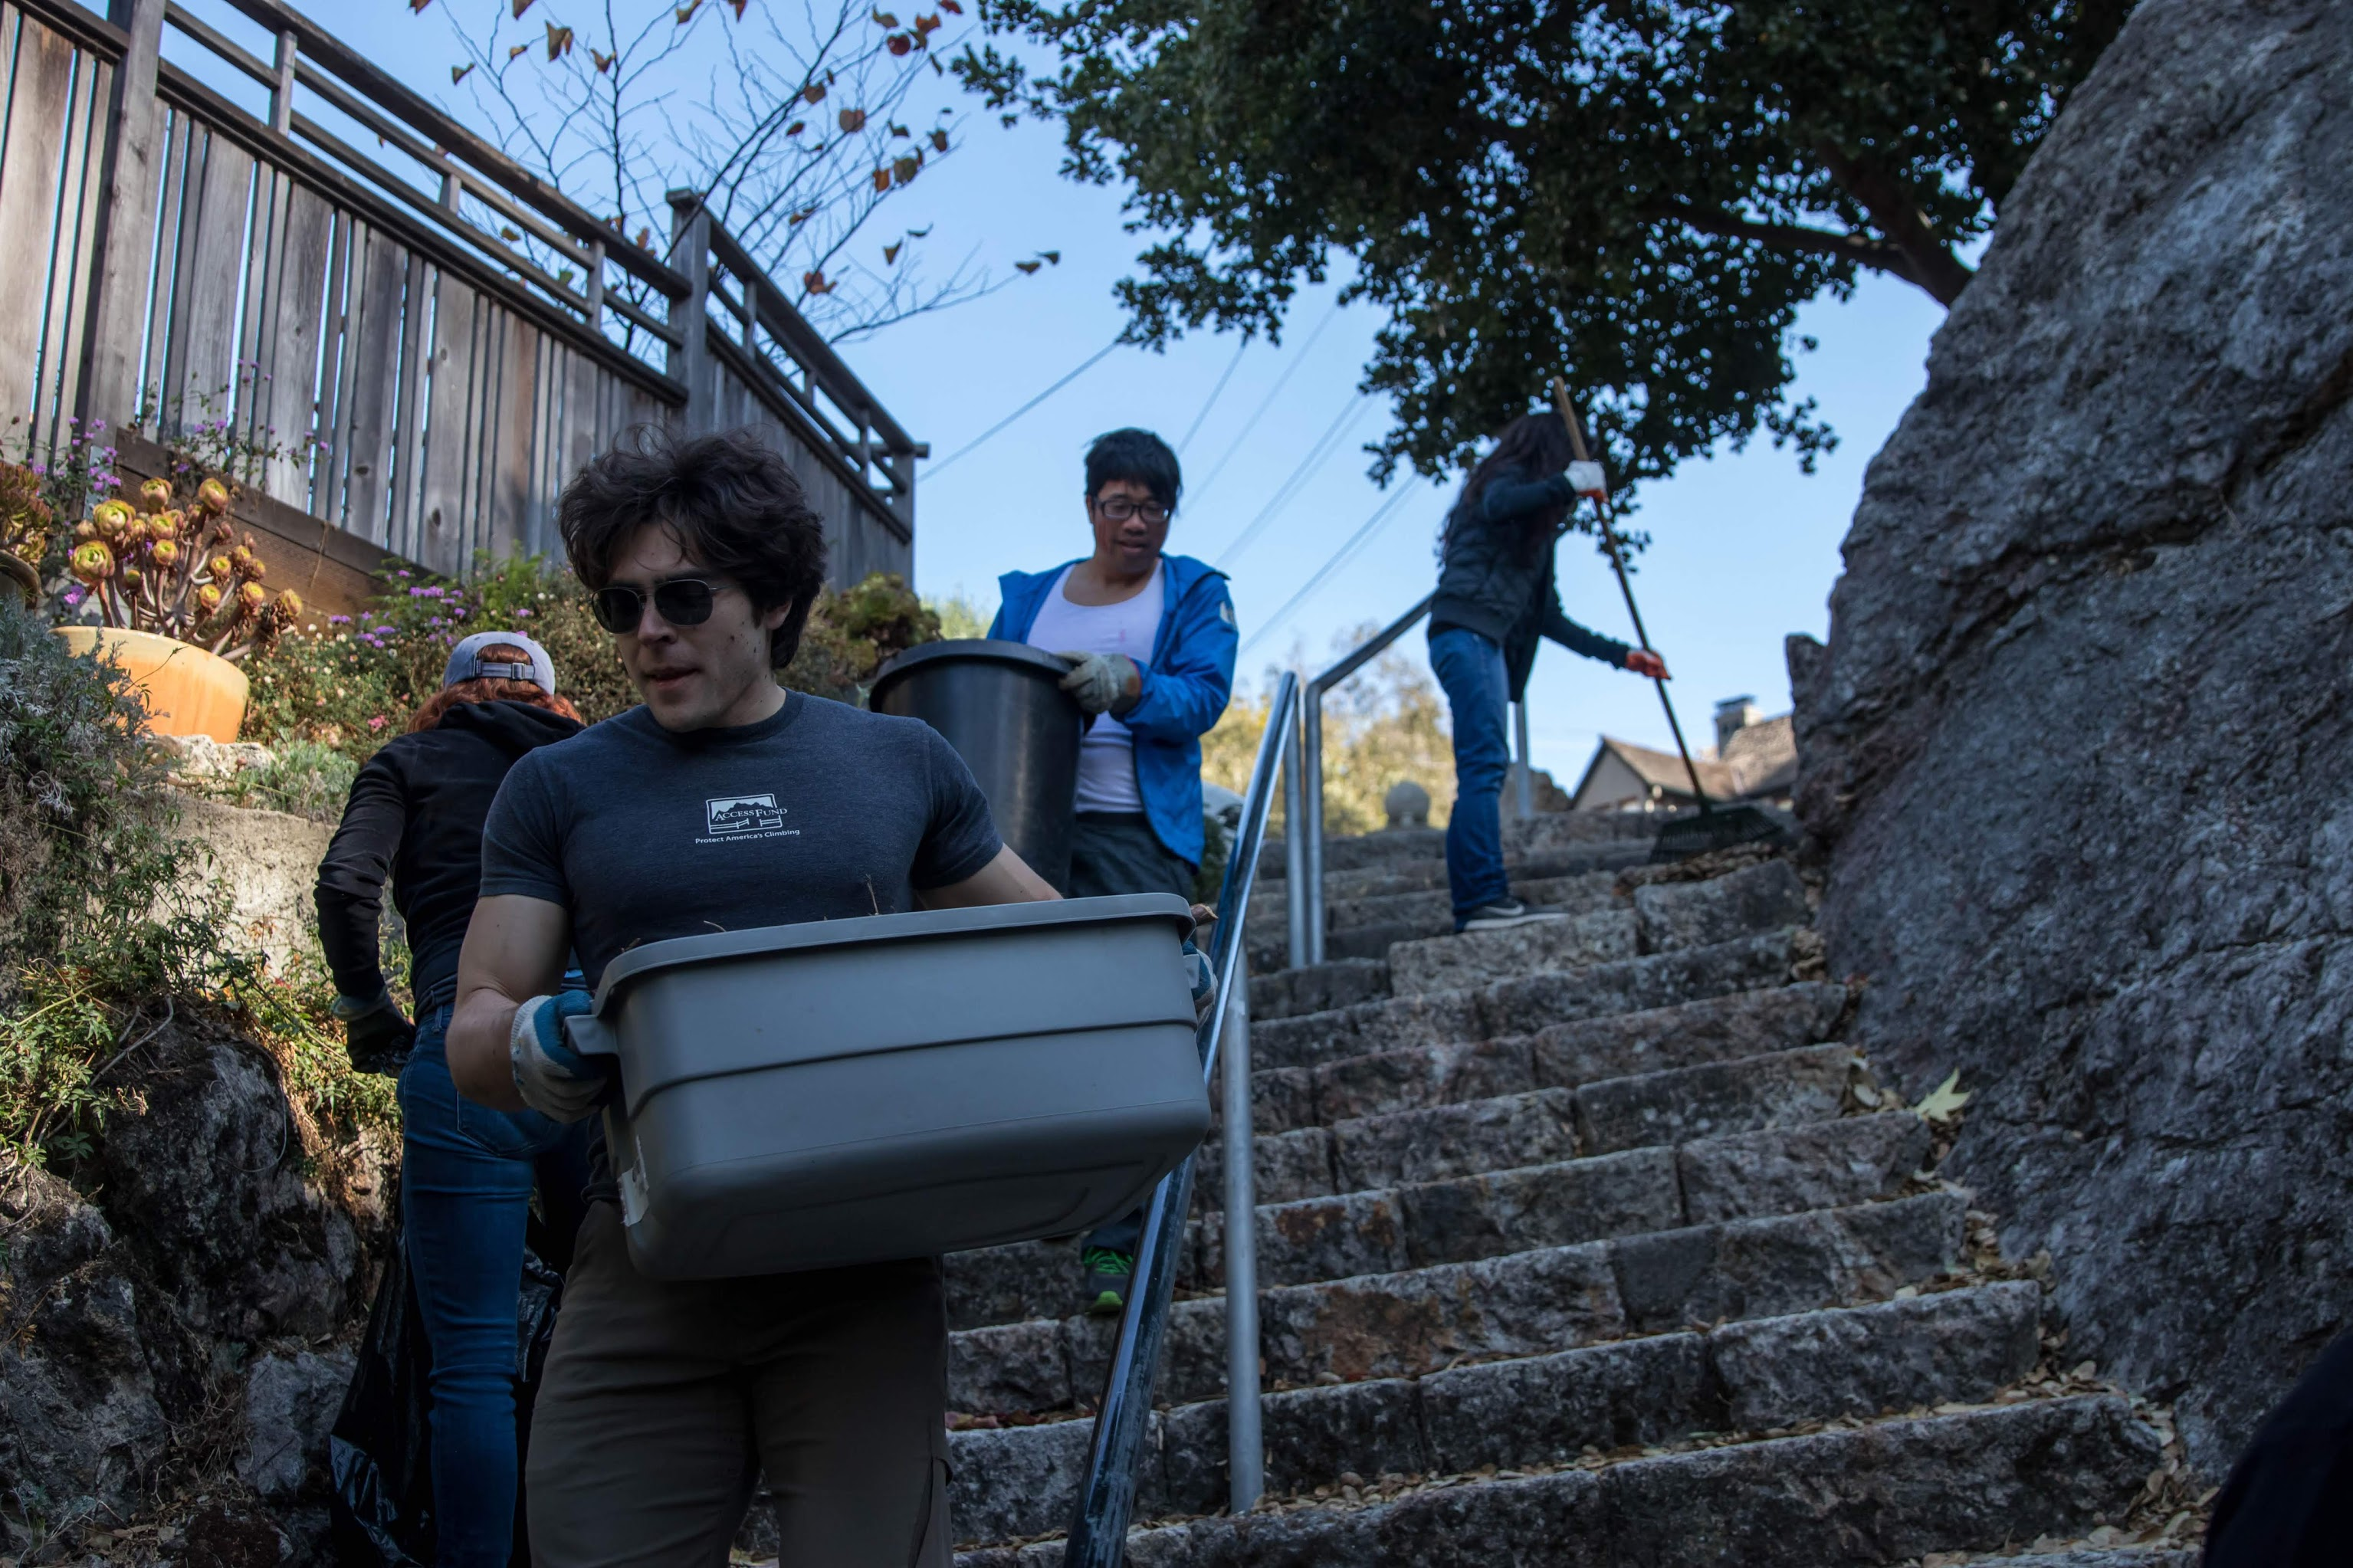 volunteers carry buckets down a stone stairway